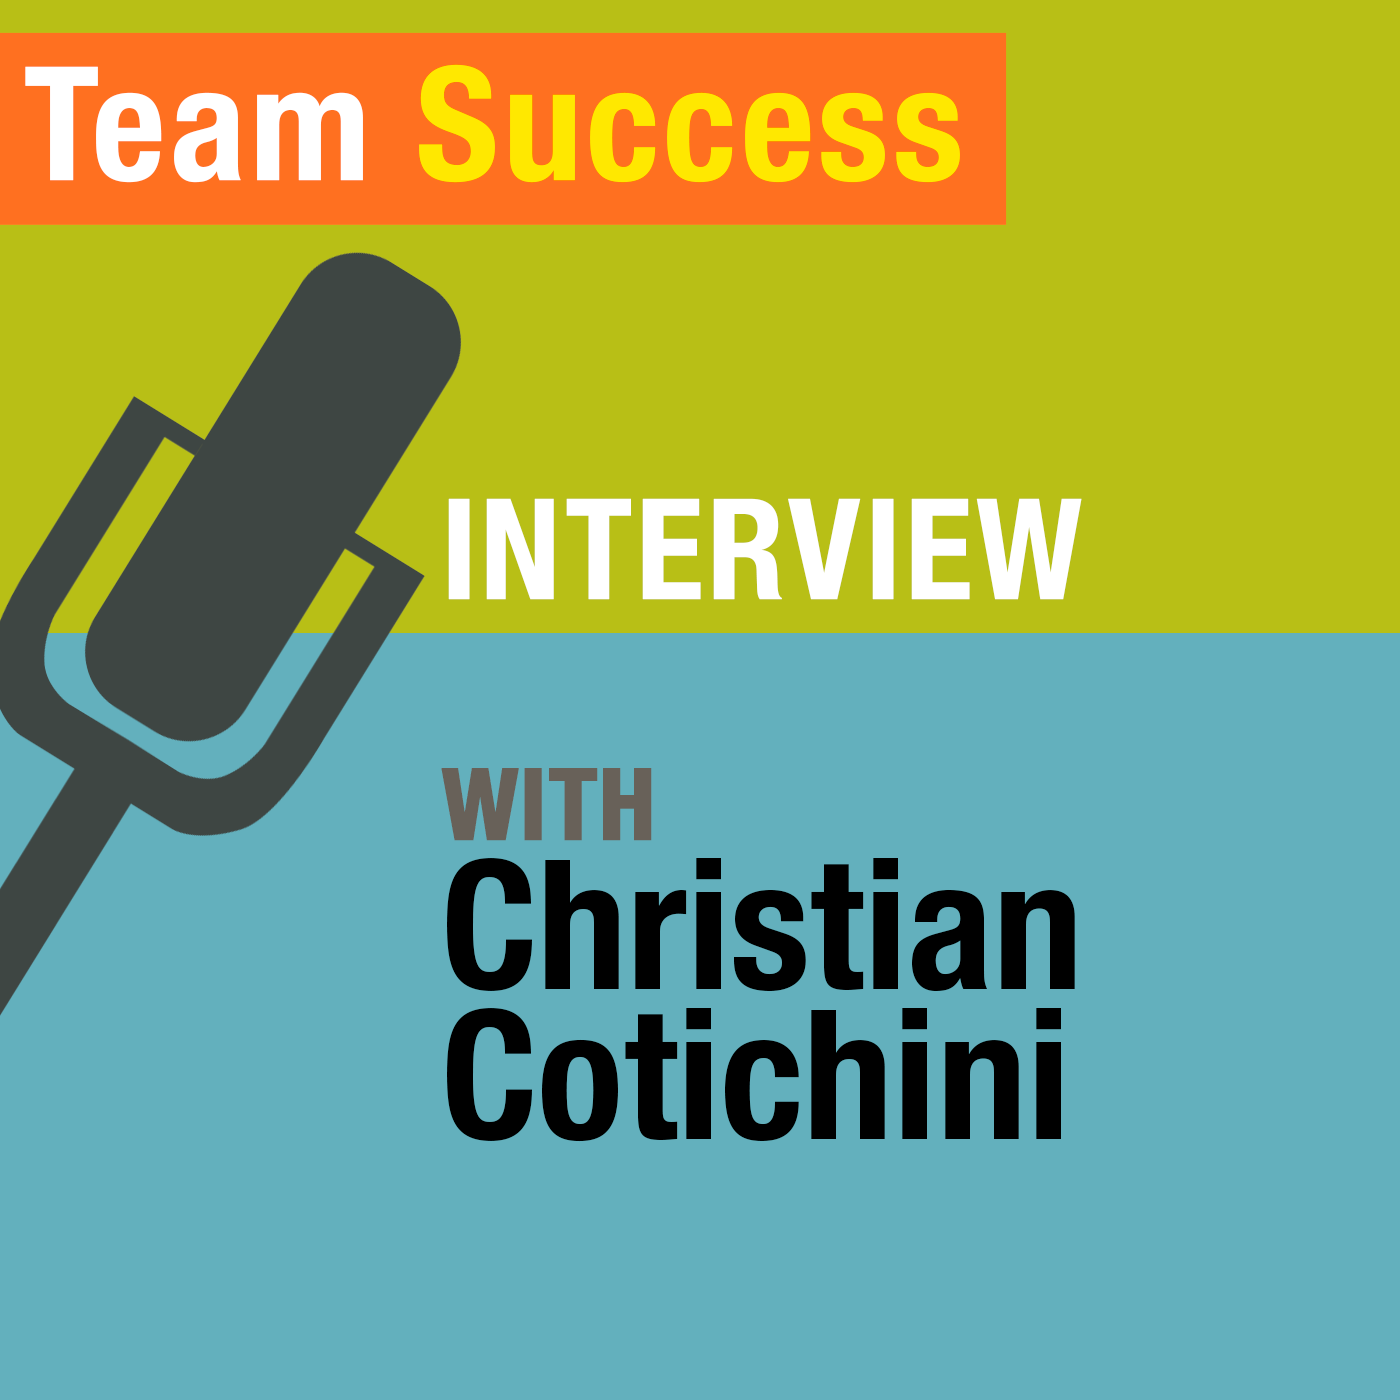 An Interview With Christian Cotichini - Team Success Podcast